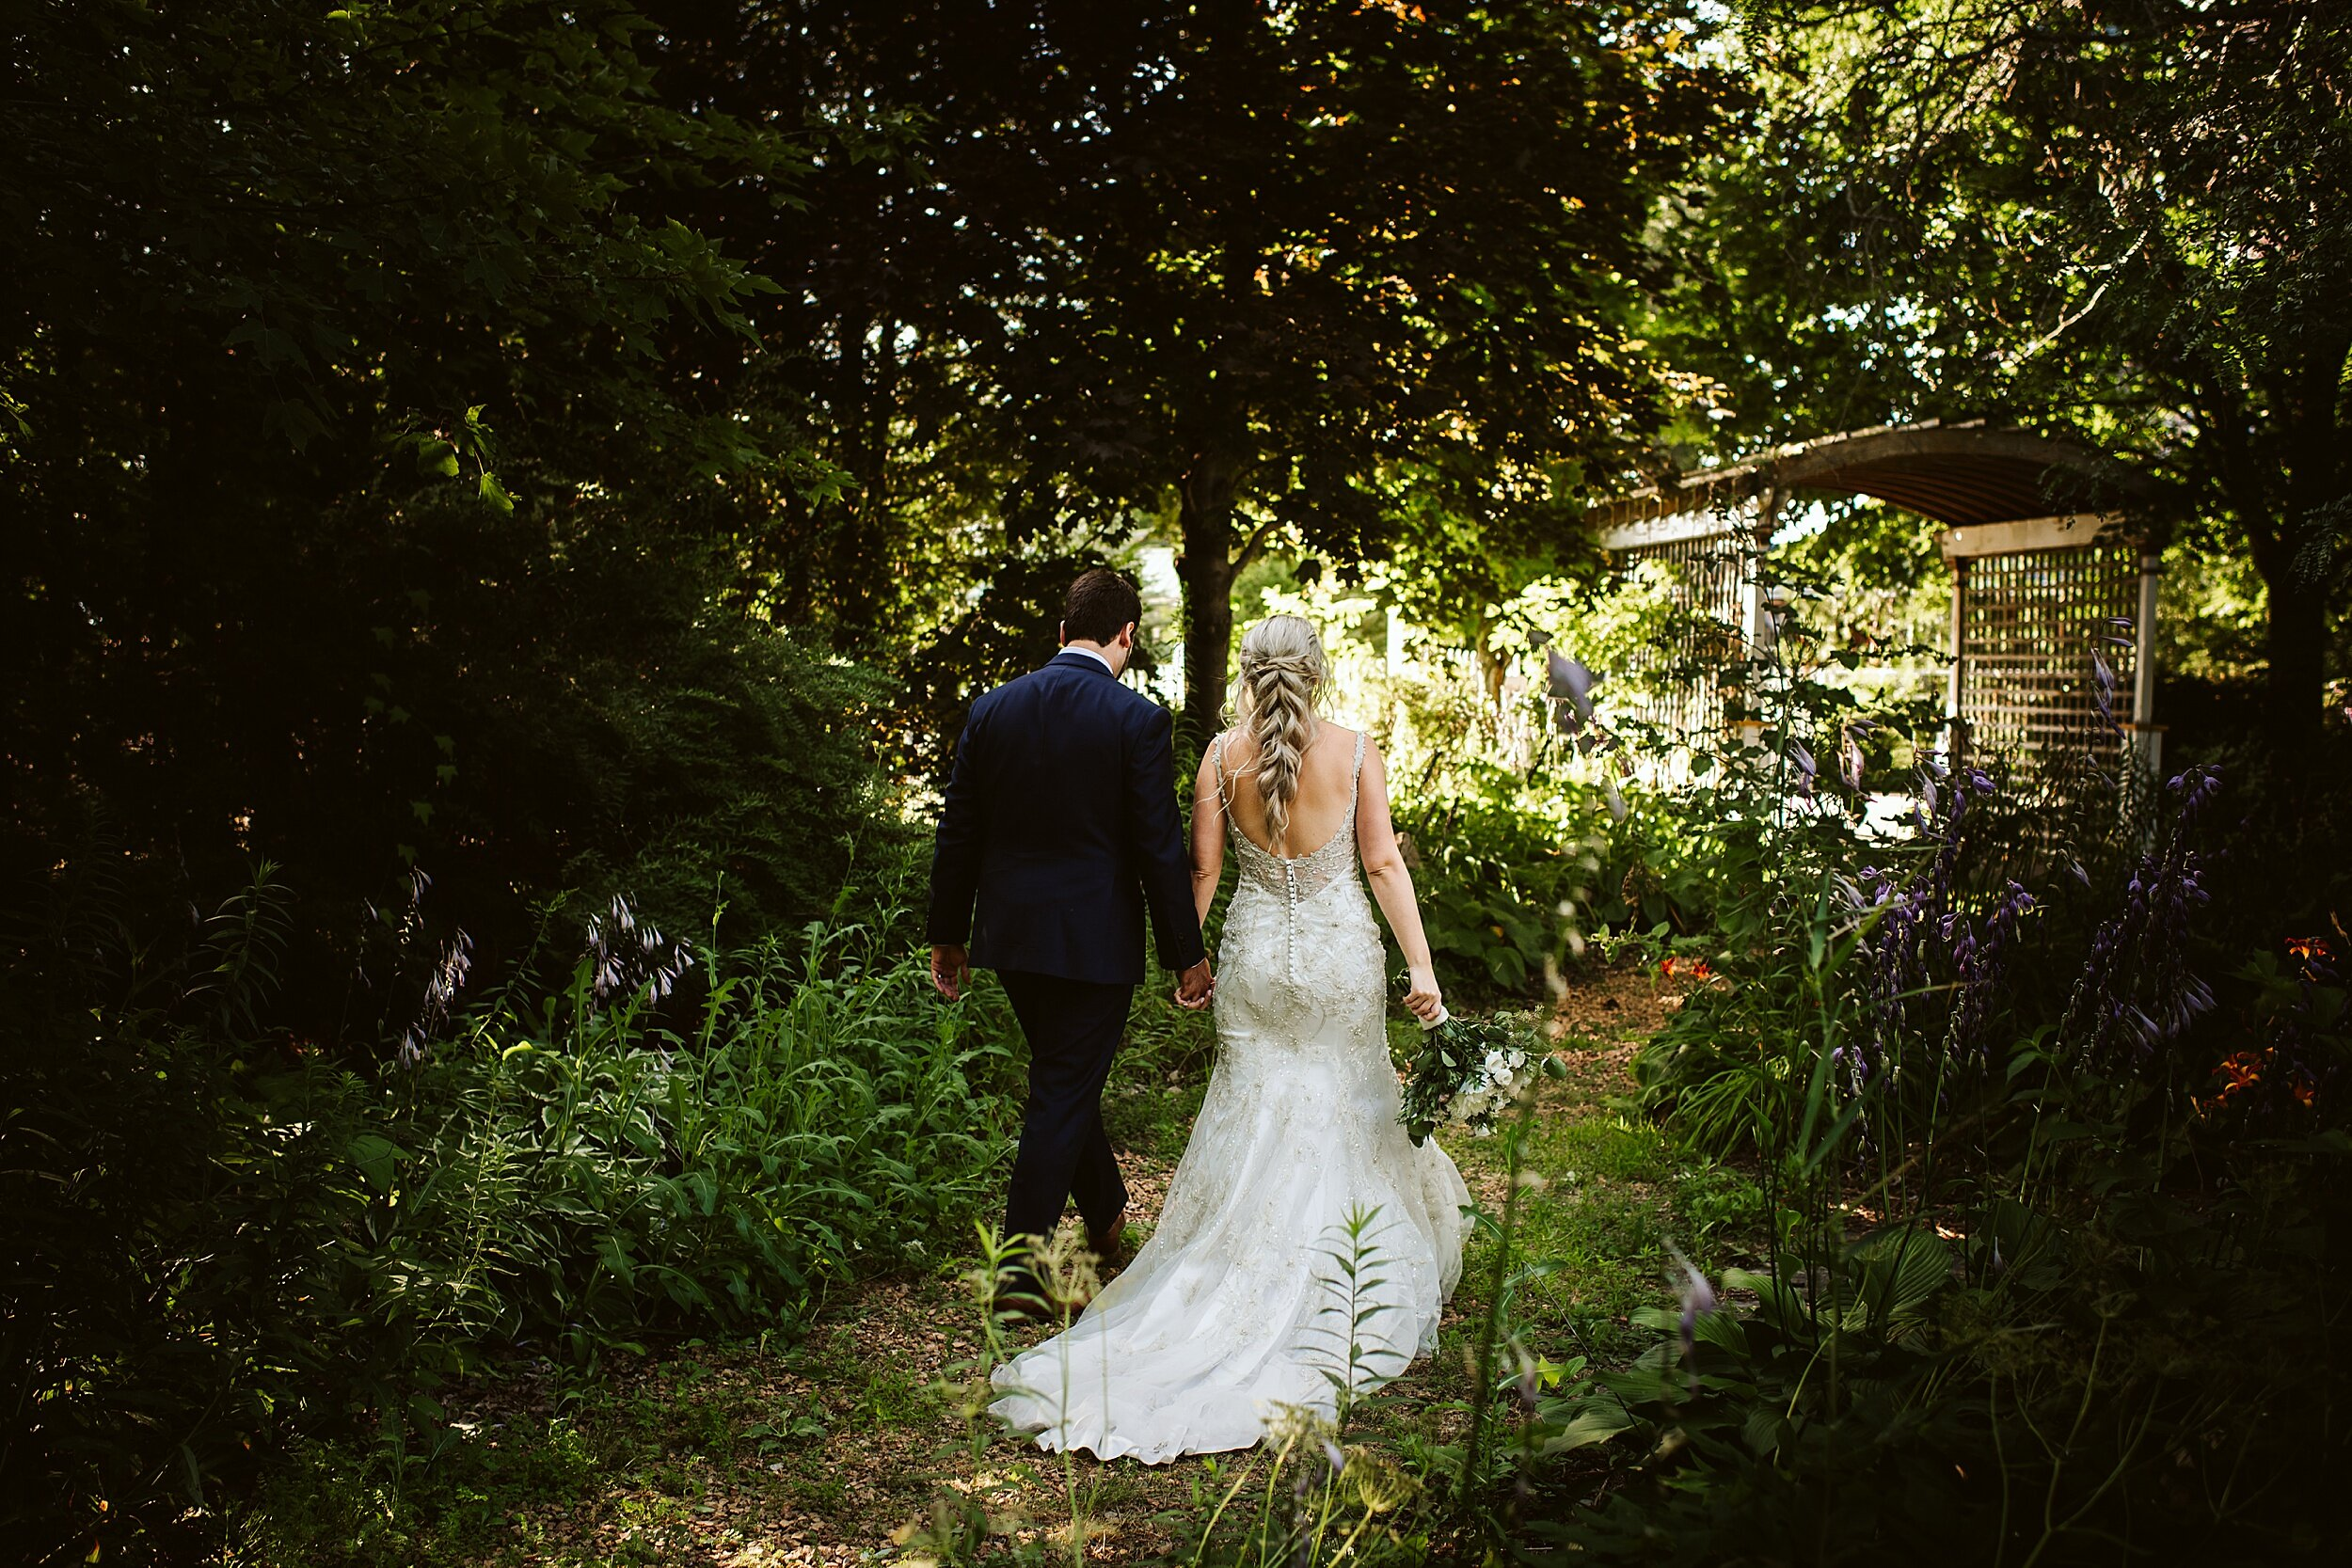 Belcroft-estates-barn-wedding-toronto-photographers_0053.jpg